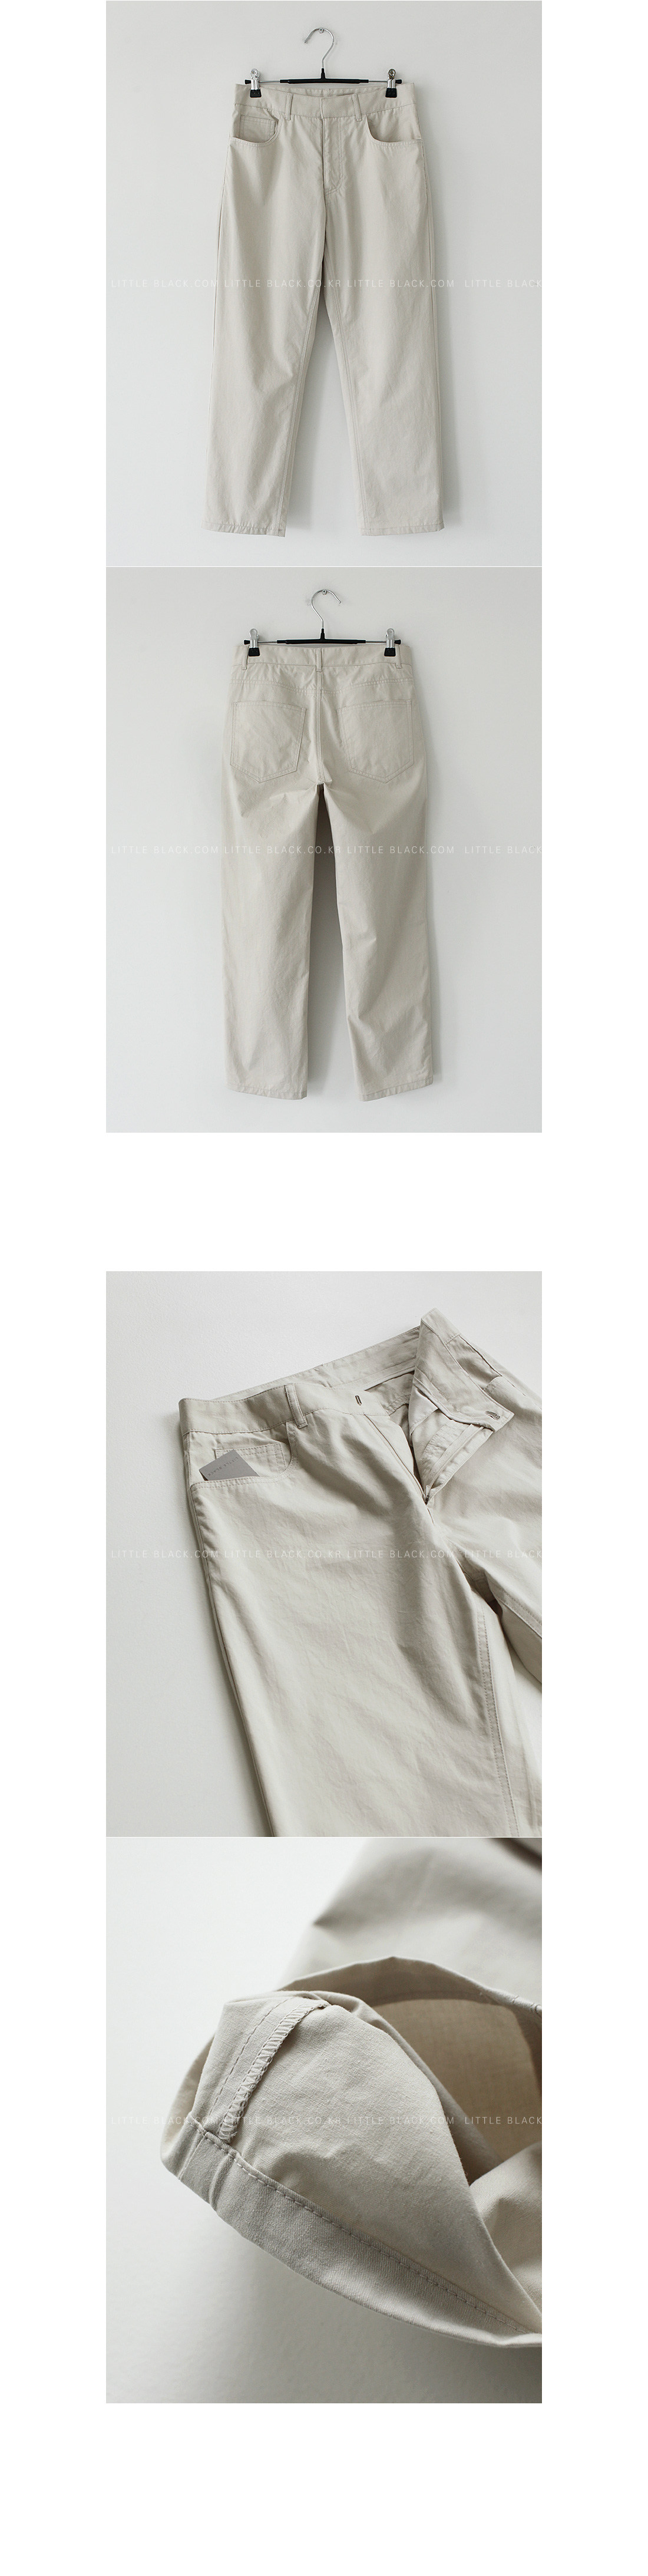 Straight-Cut Cotton Pants|